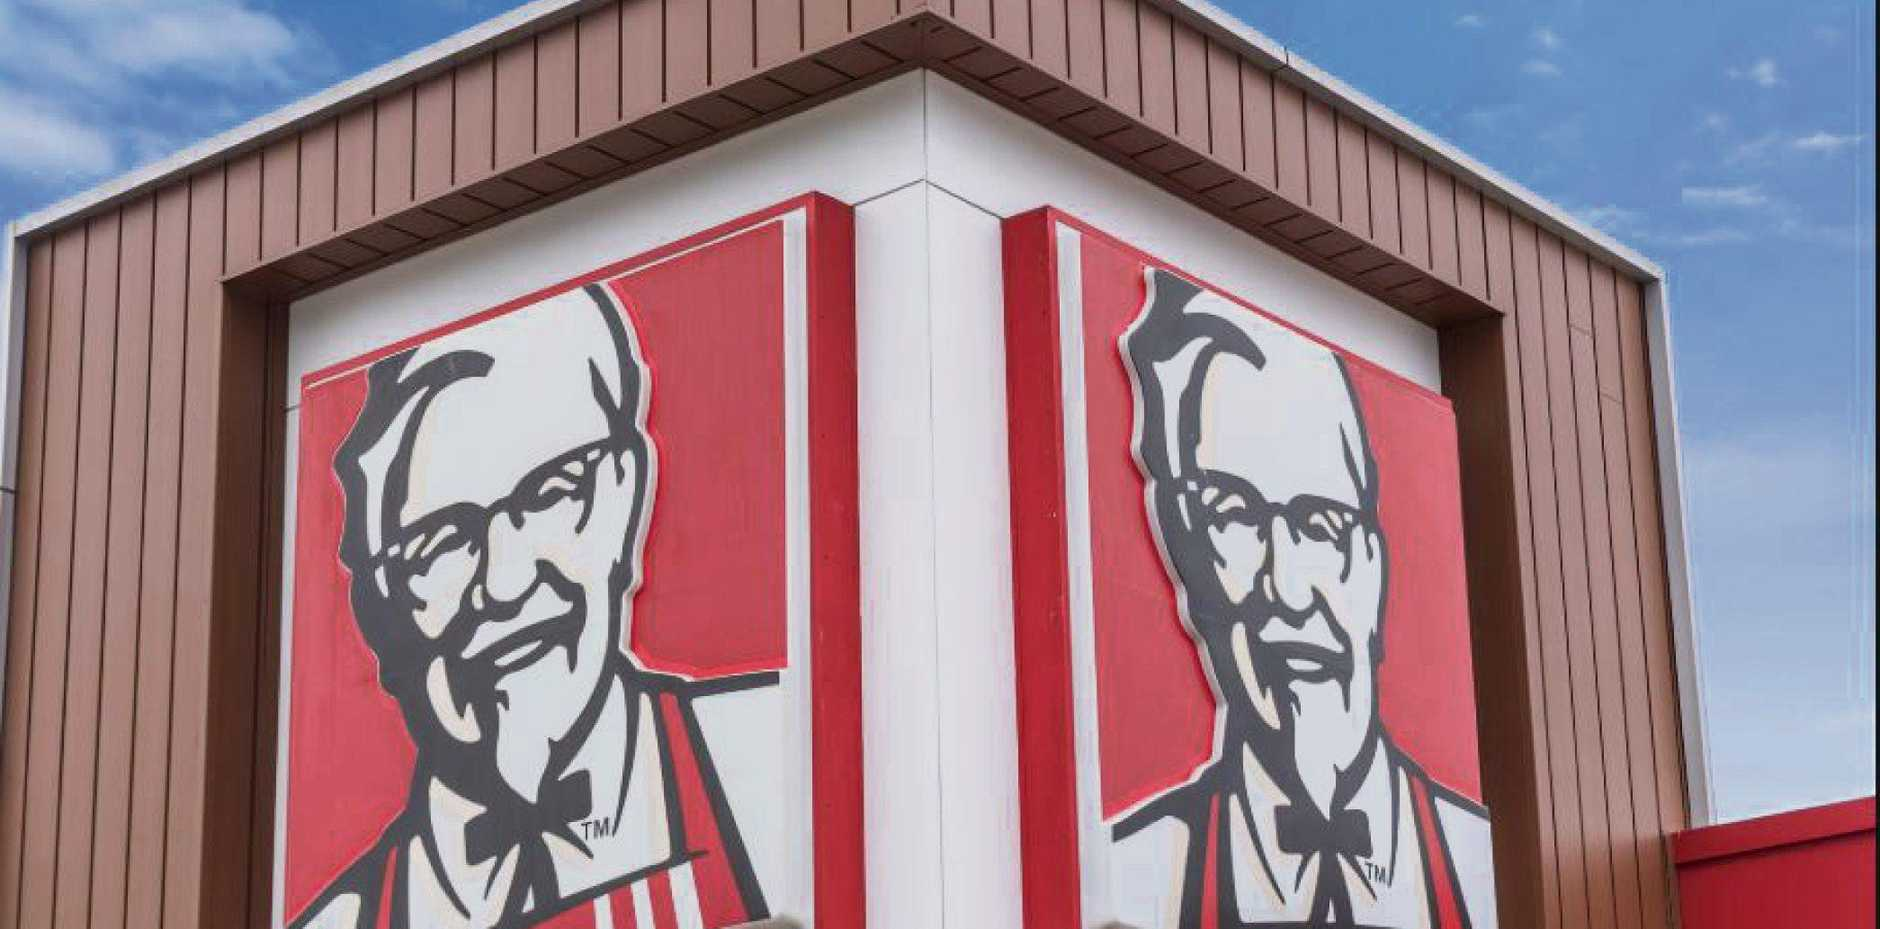 The company owning a Coffs Harbour KFC franchise has been fined $60,000 over the workplace injury three years ago.